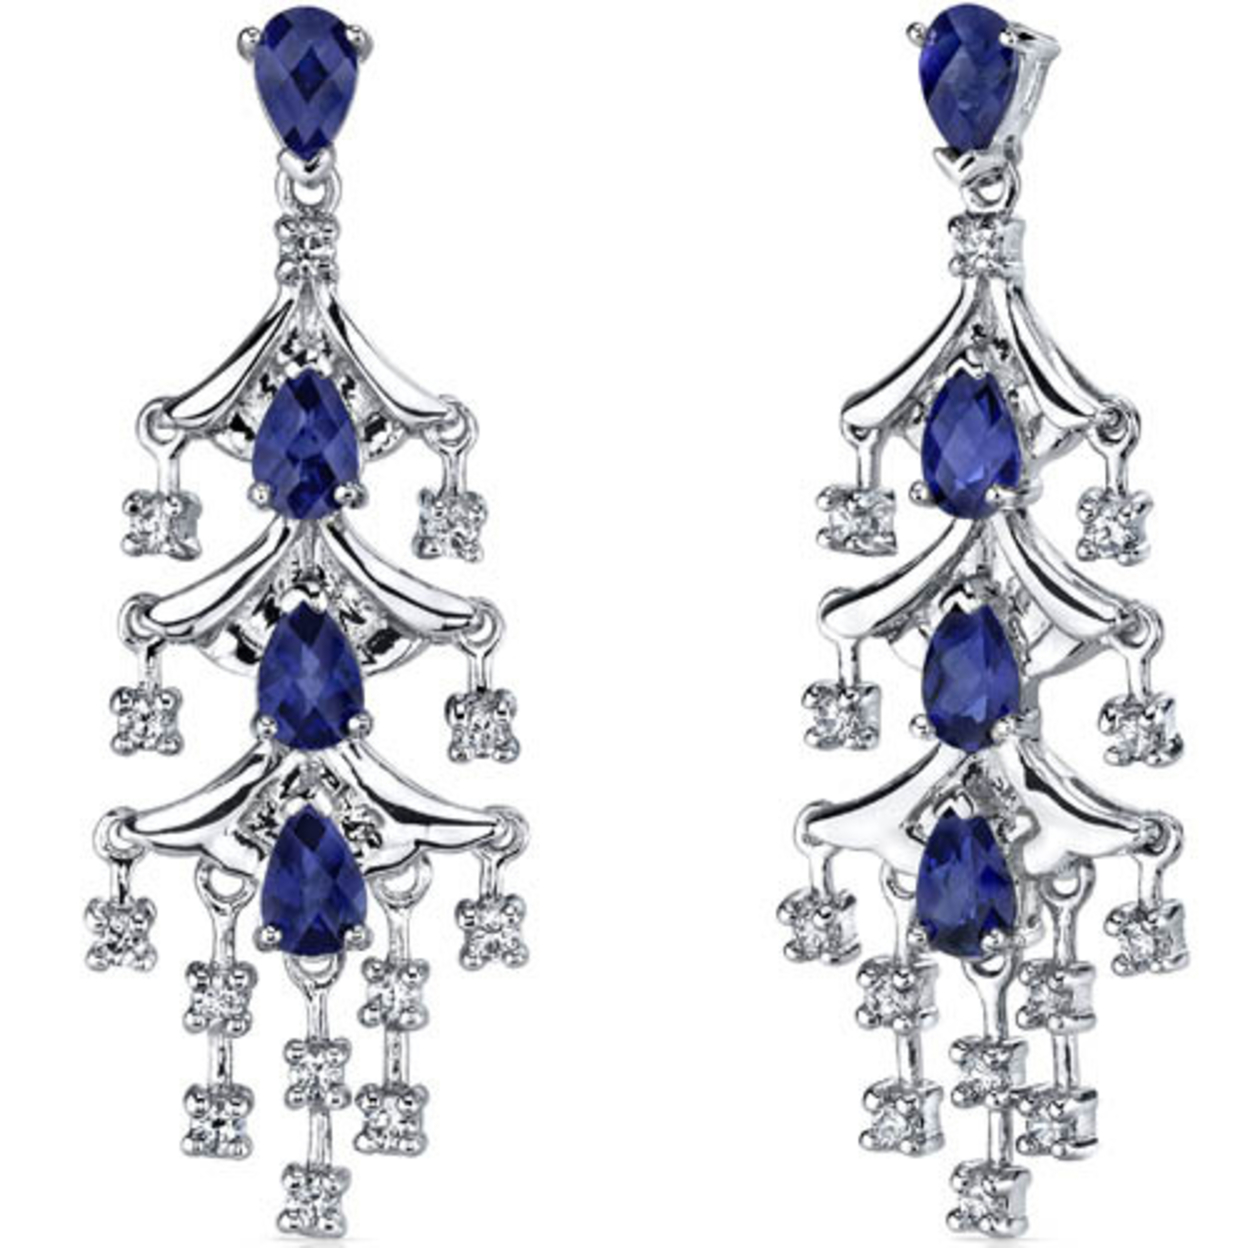 Captivating Seduction 4.00 Carats Blue Sapphire Dangle Earrings In Sterling Silver Style Se7198